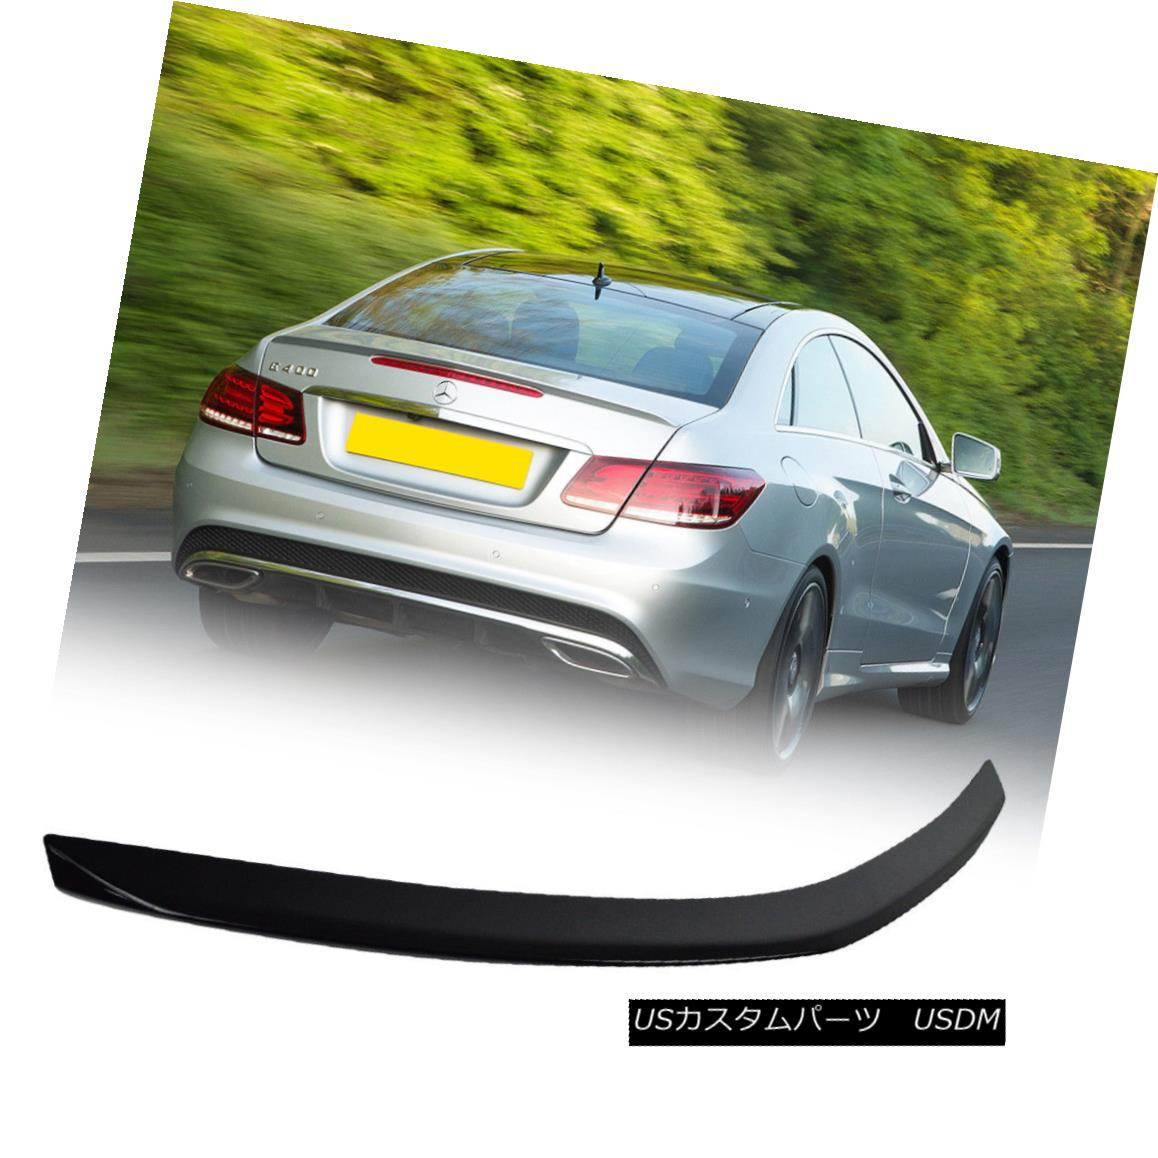 PAINTED C207 COUPE For Mercedes Benz E-CLASS ROOF SPOILER WING ABS 2009+